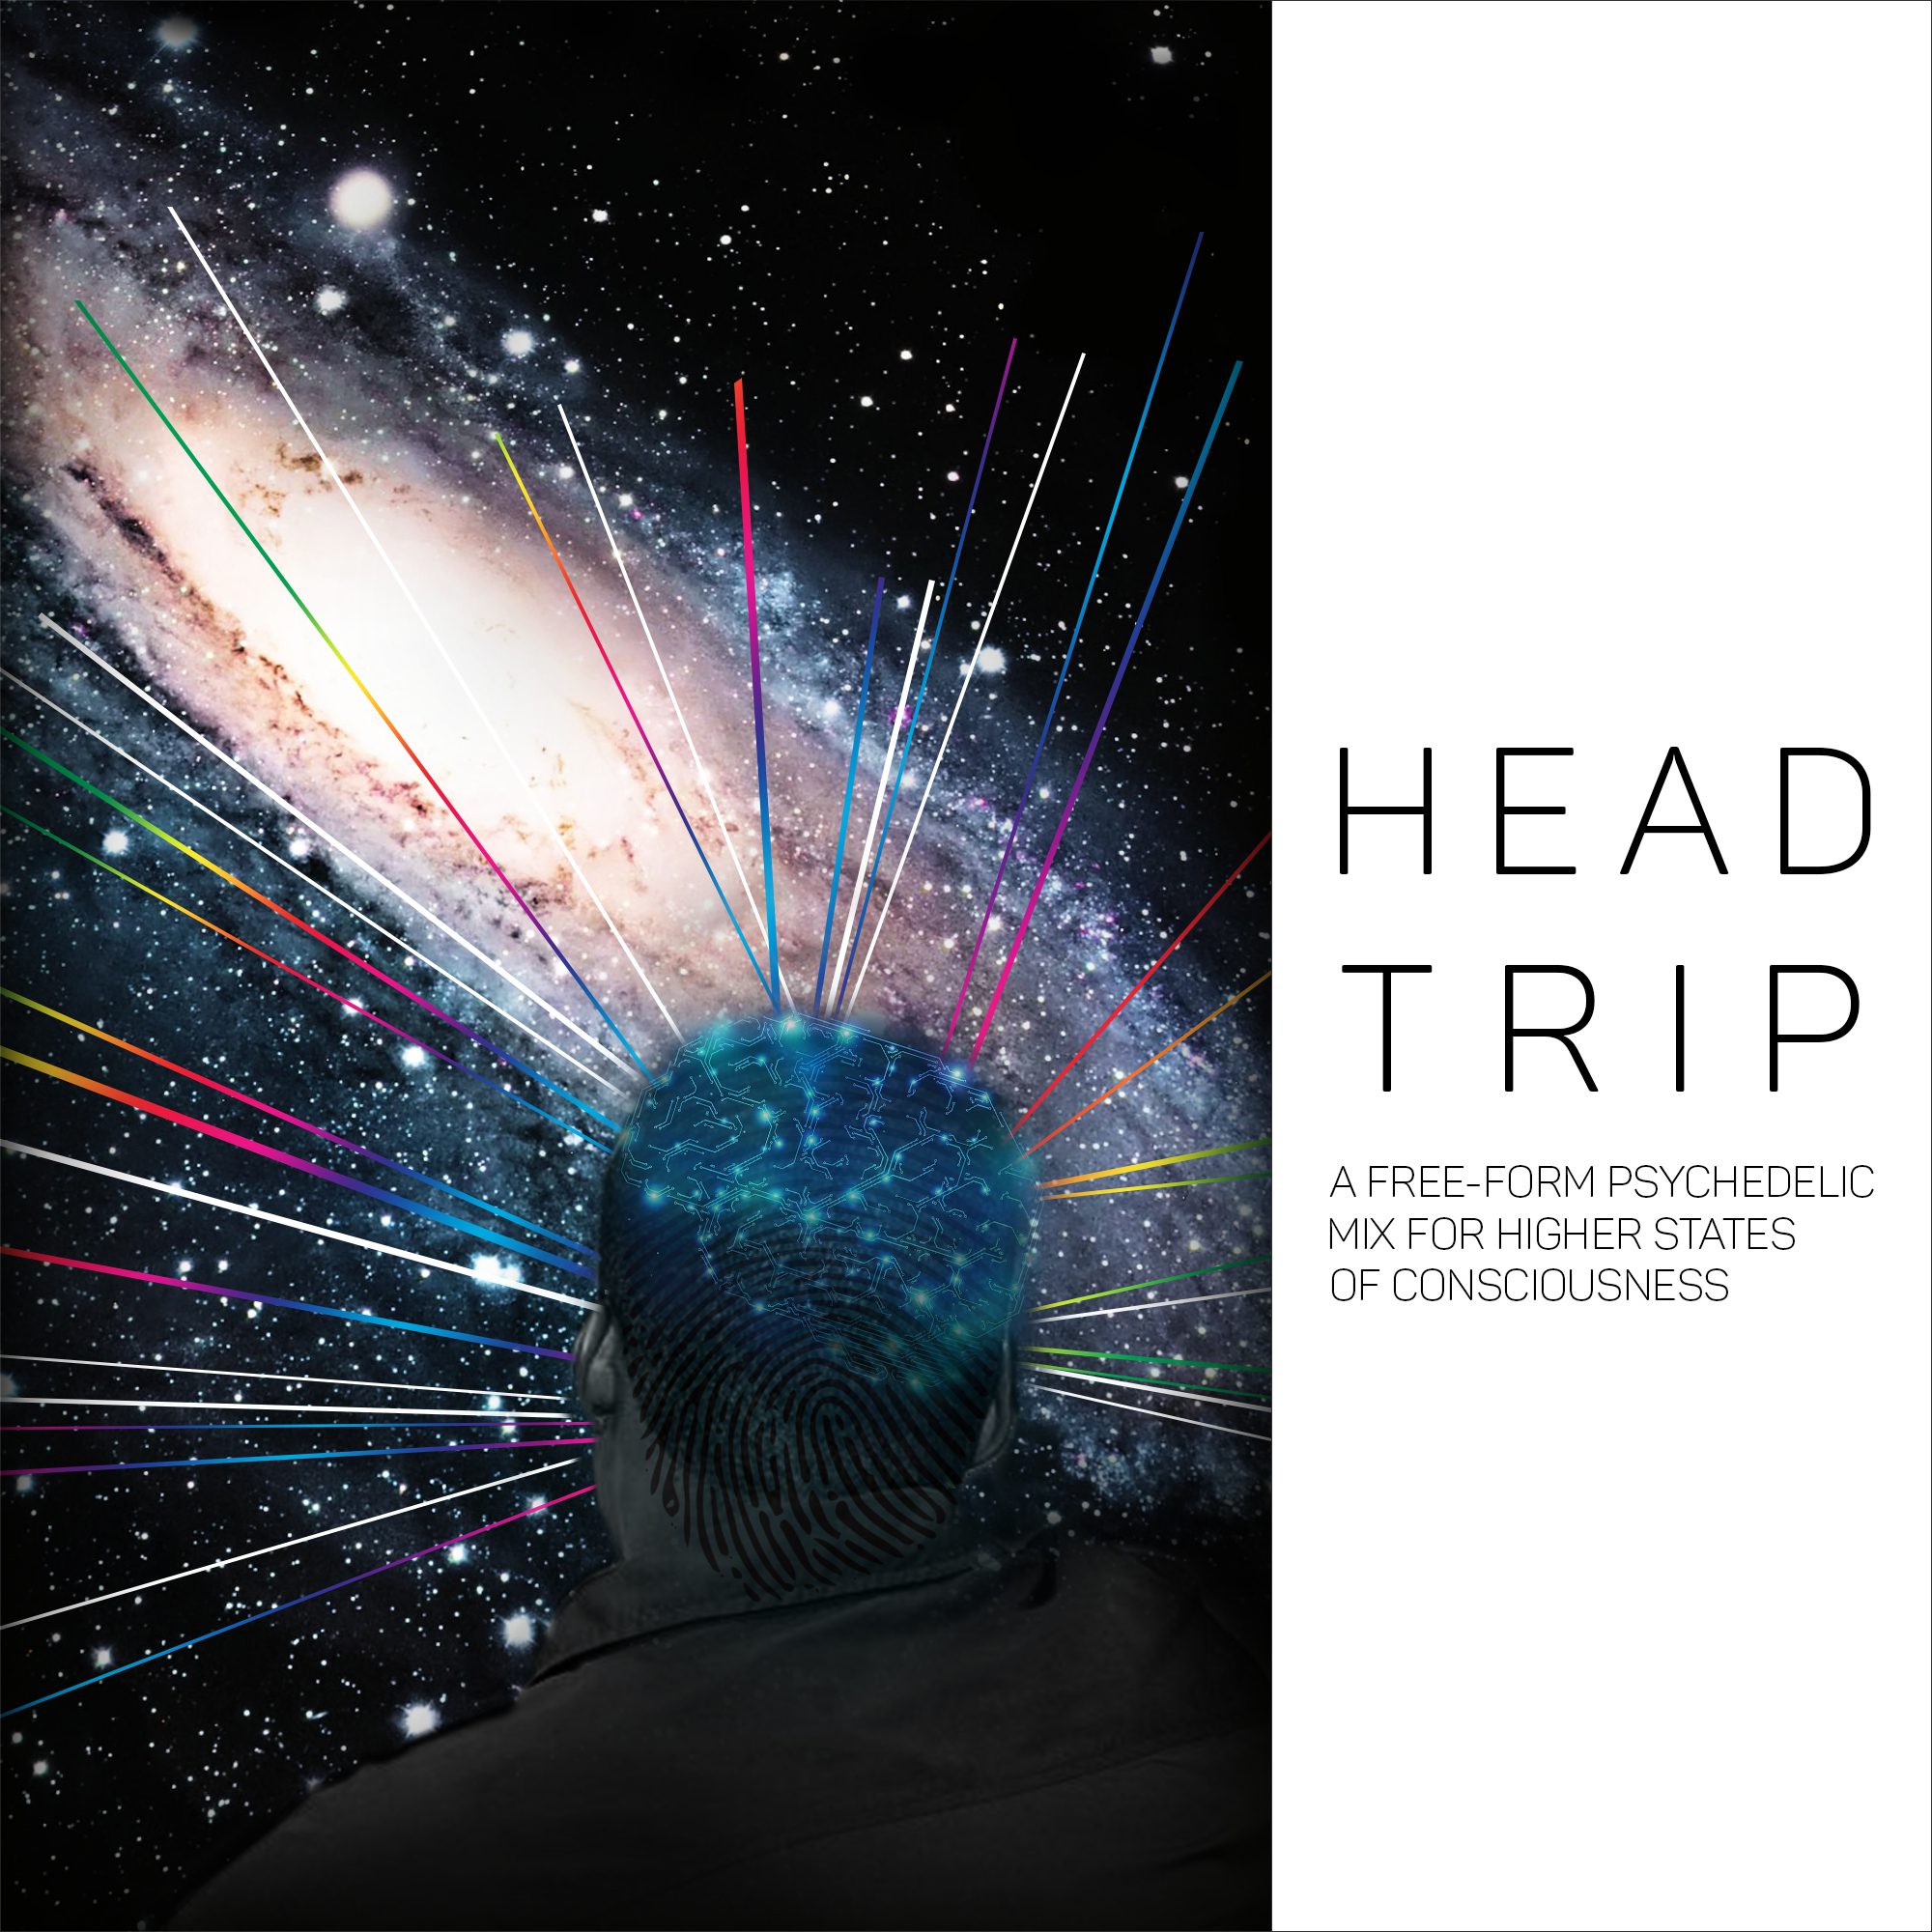 Head Trip: A Free-Form, Psychedelic Mix for higher states of conconsciousness.